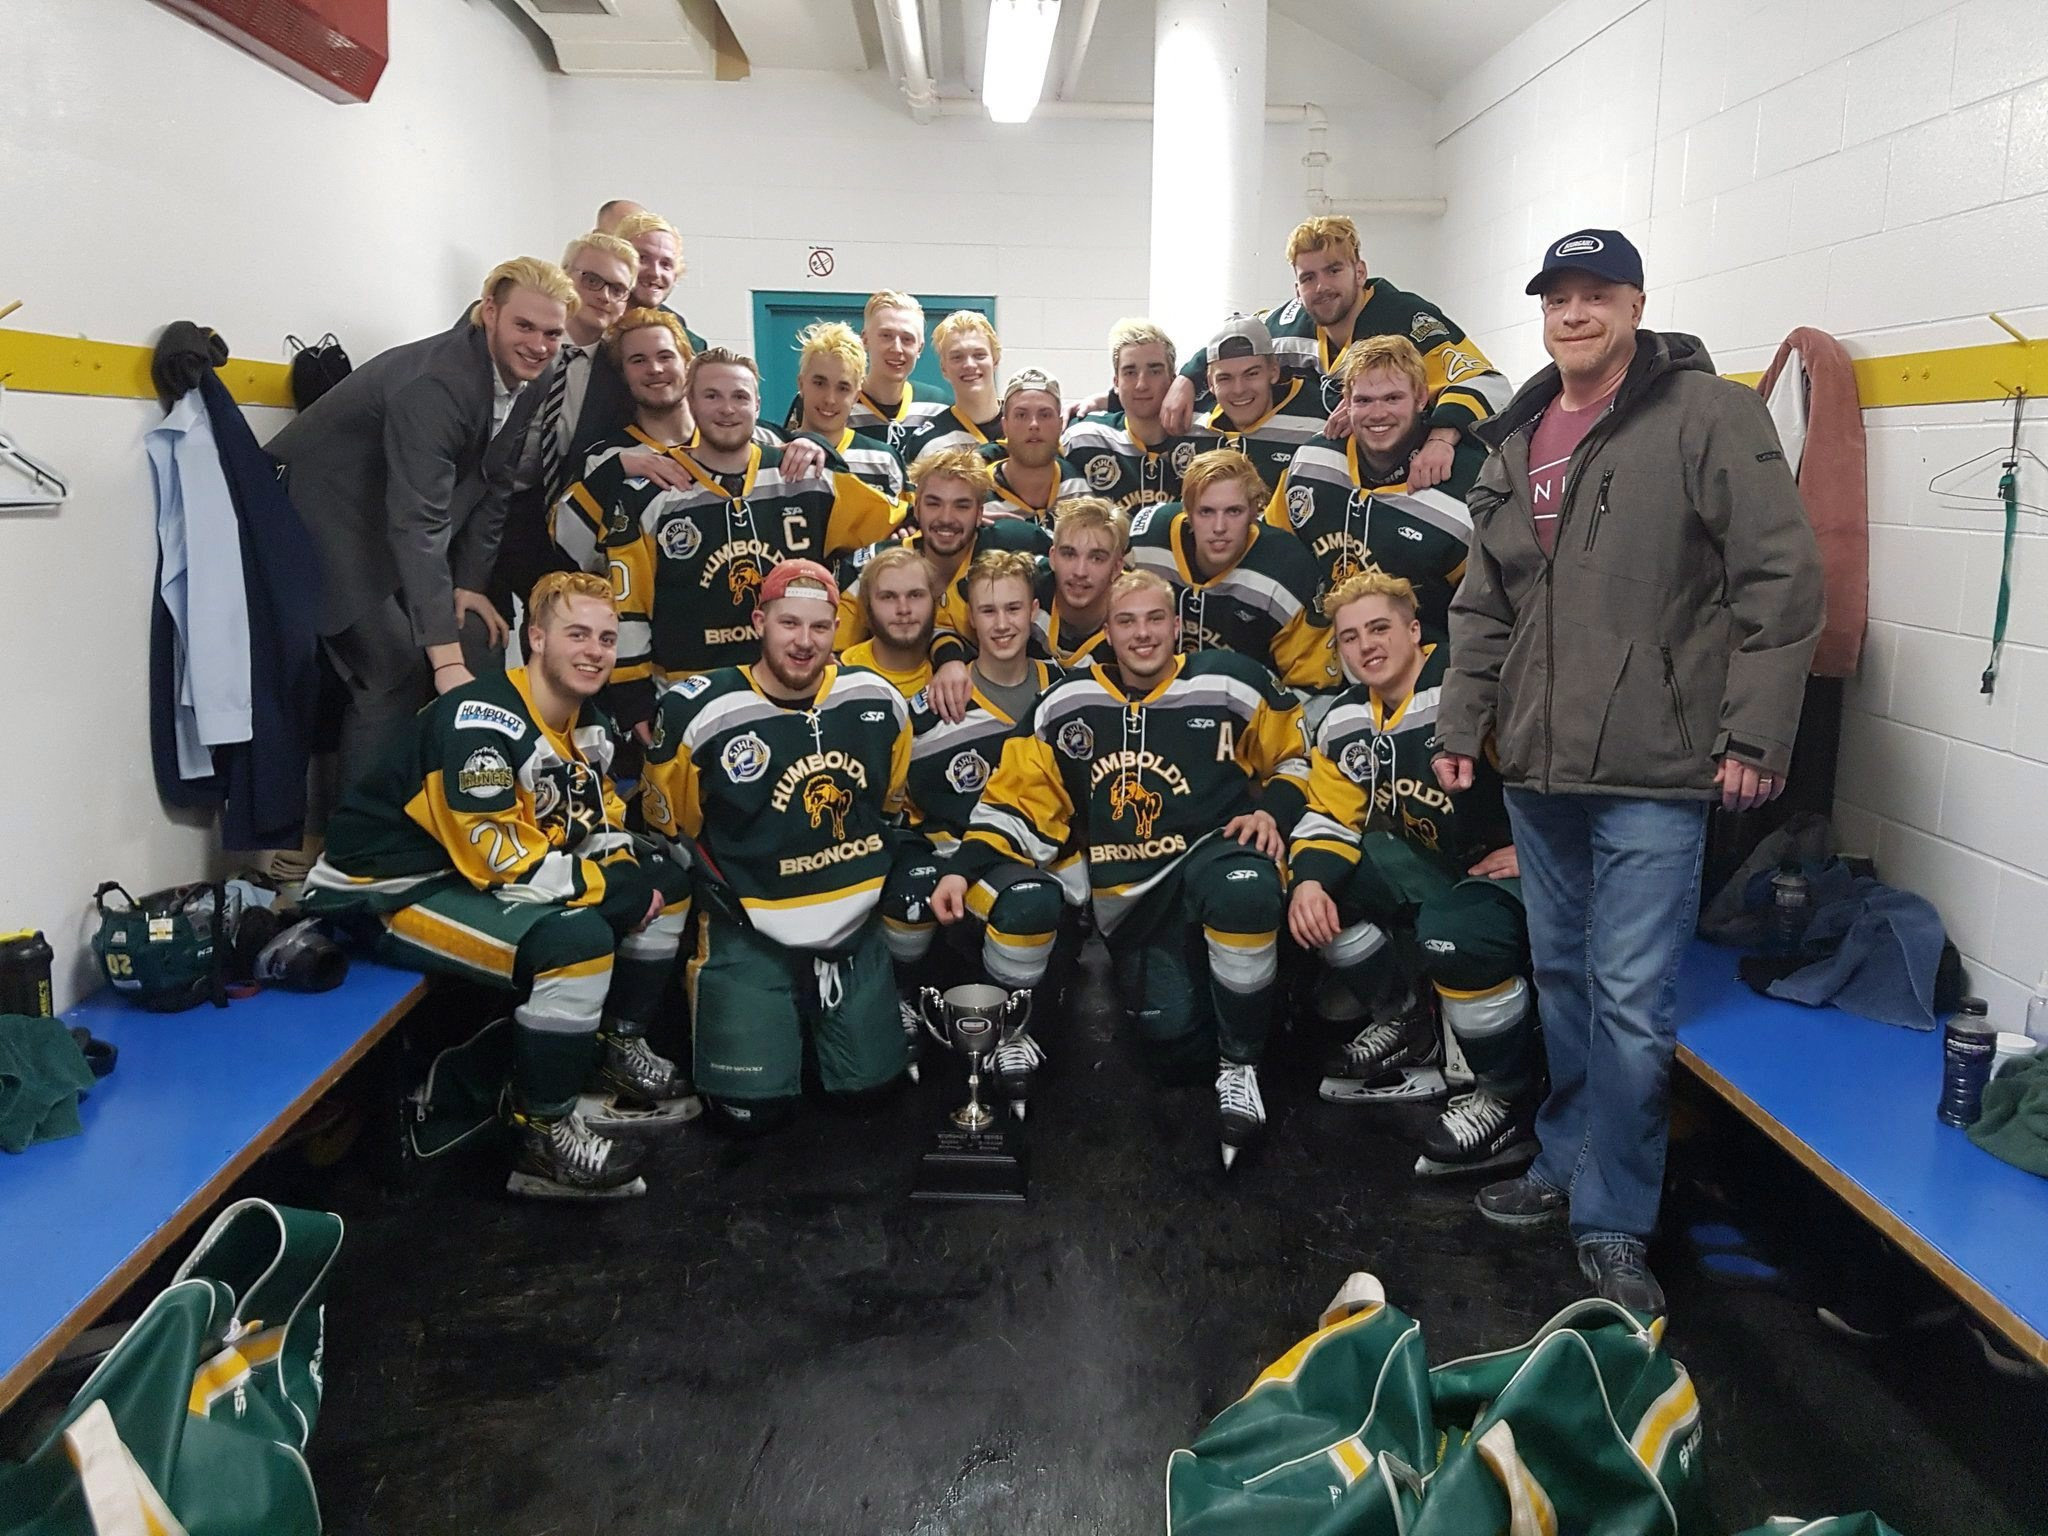 Thr Broncos celebrated a playoff win over the Melfort Mustangs on March 24, 2018. (Canadian Press)